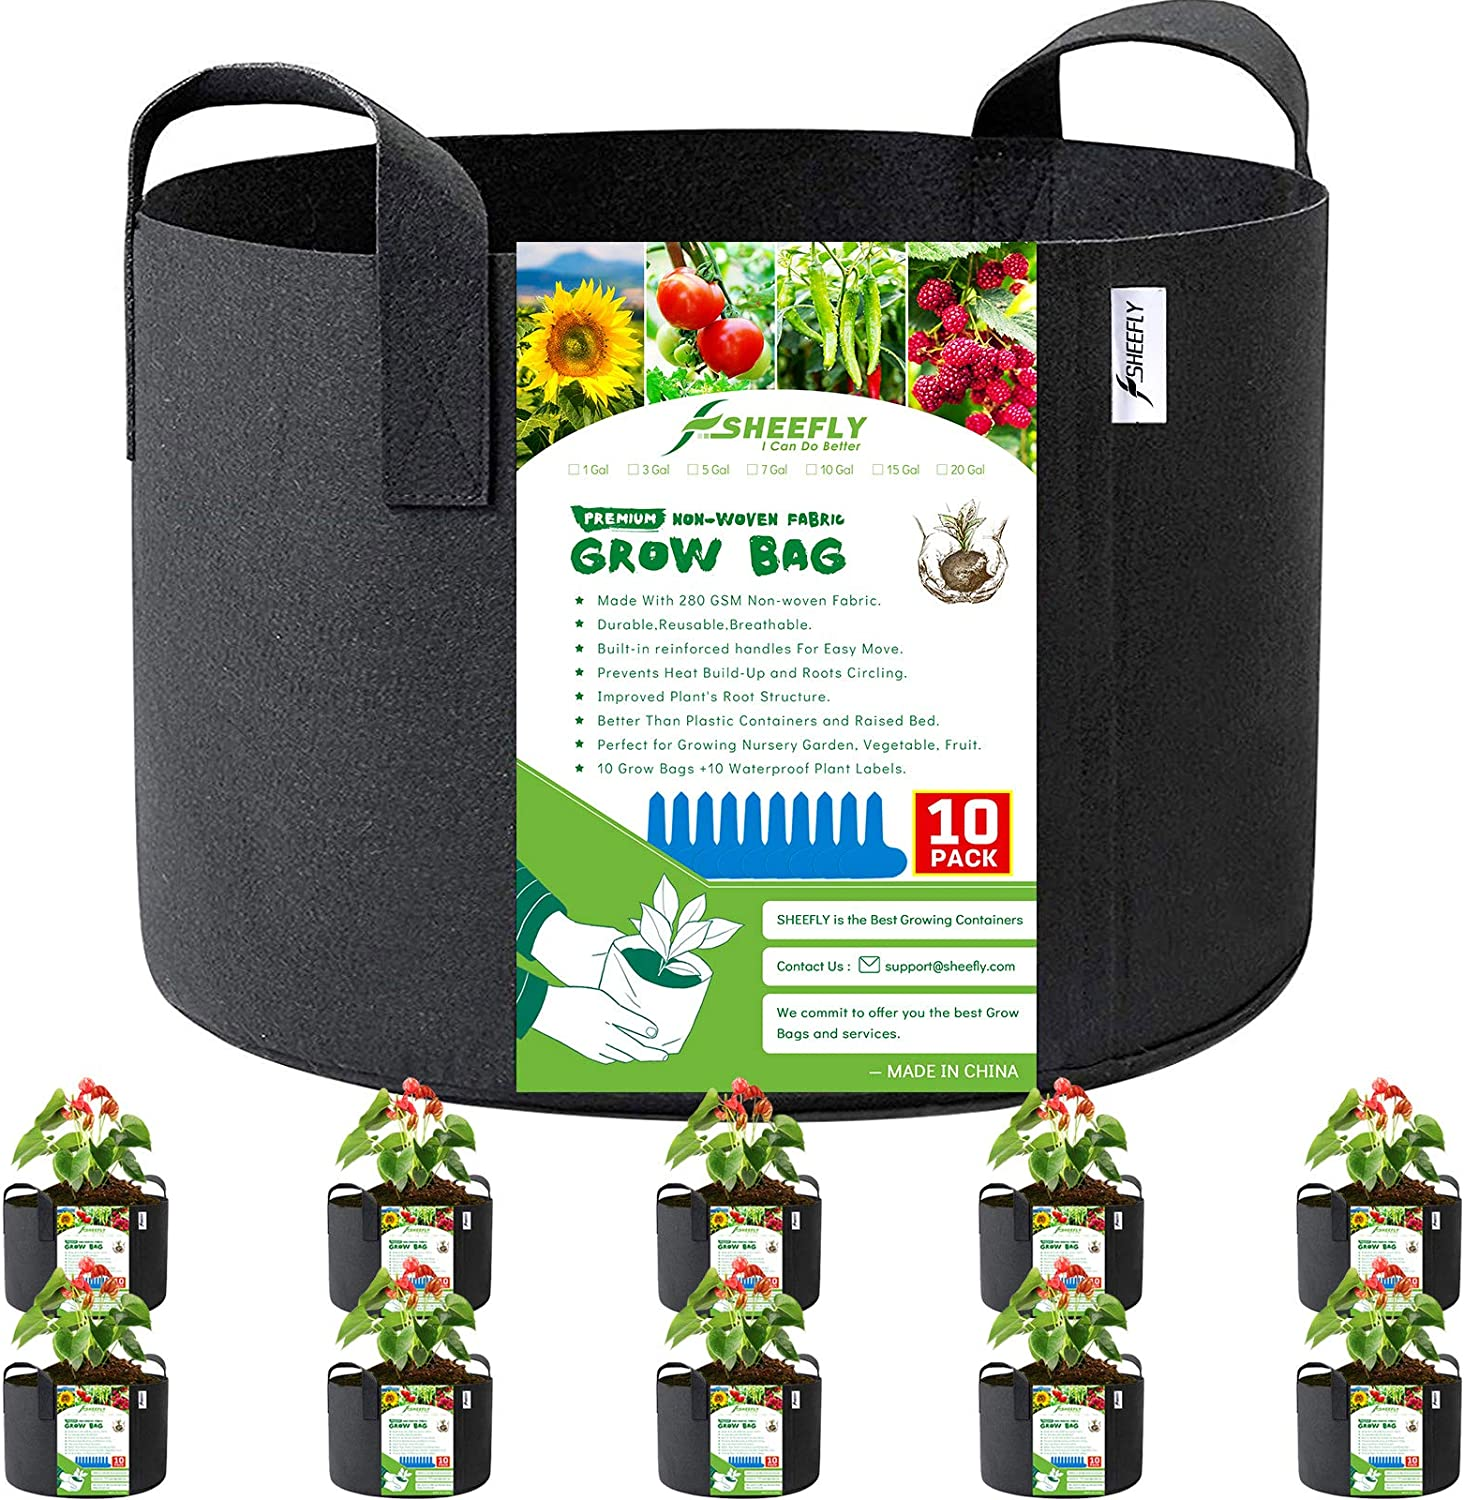 SHEEFLY 10 Pack 5 Gallon Grow Bags, Non Woven Durable Thickened Aeration Fabric Pots Container with Reinforced Handles for Nursery Garden Home Vegetable, Fruit,with 10 PCS Plant Labels (Black)